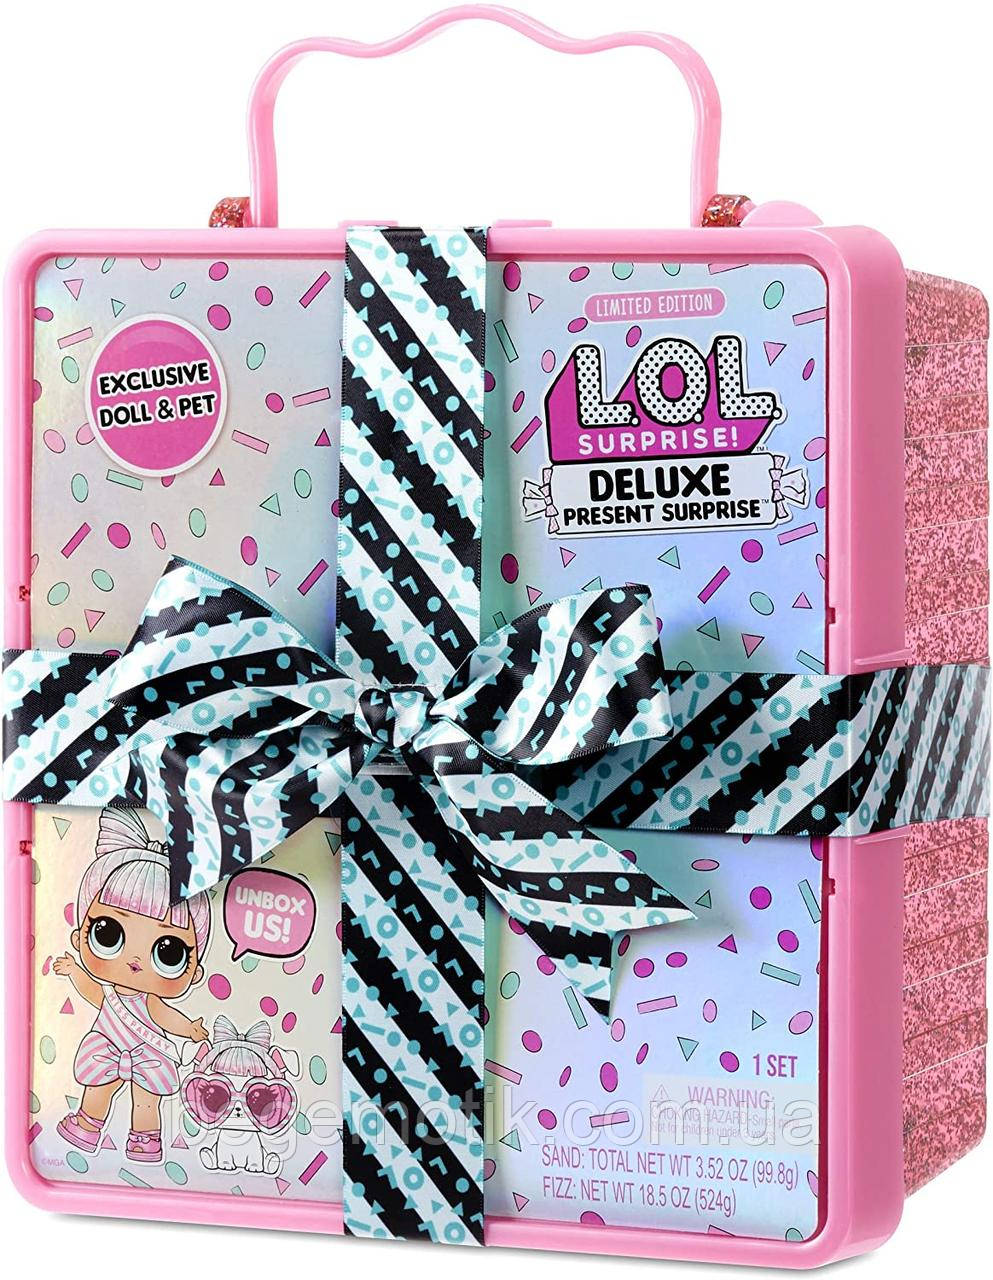 L.O.L. Surprise! Deluxe Подарочный набор Делюкс кукла и питомец Present Surprise with Miss Partay Doll and Pet